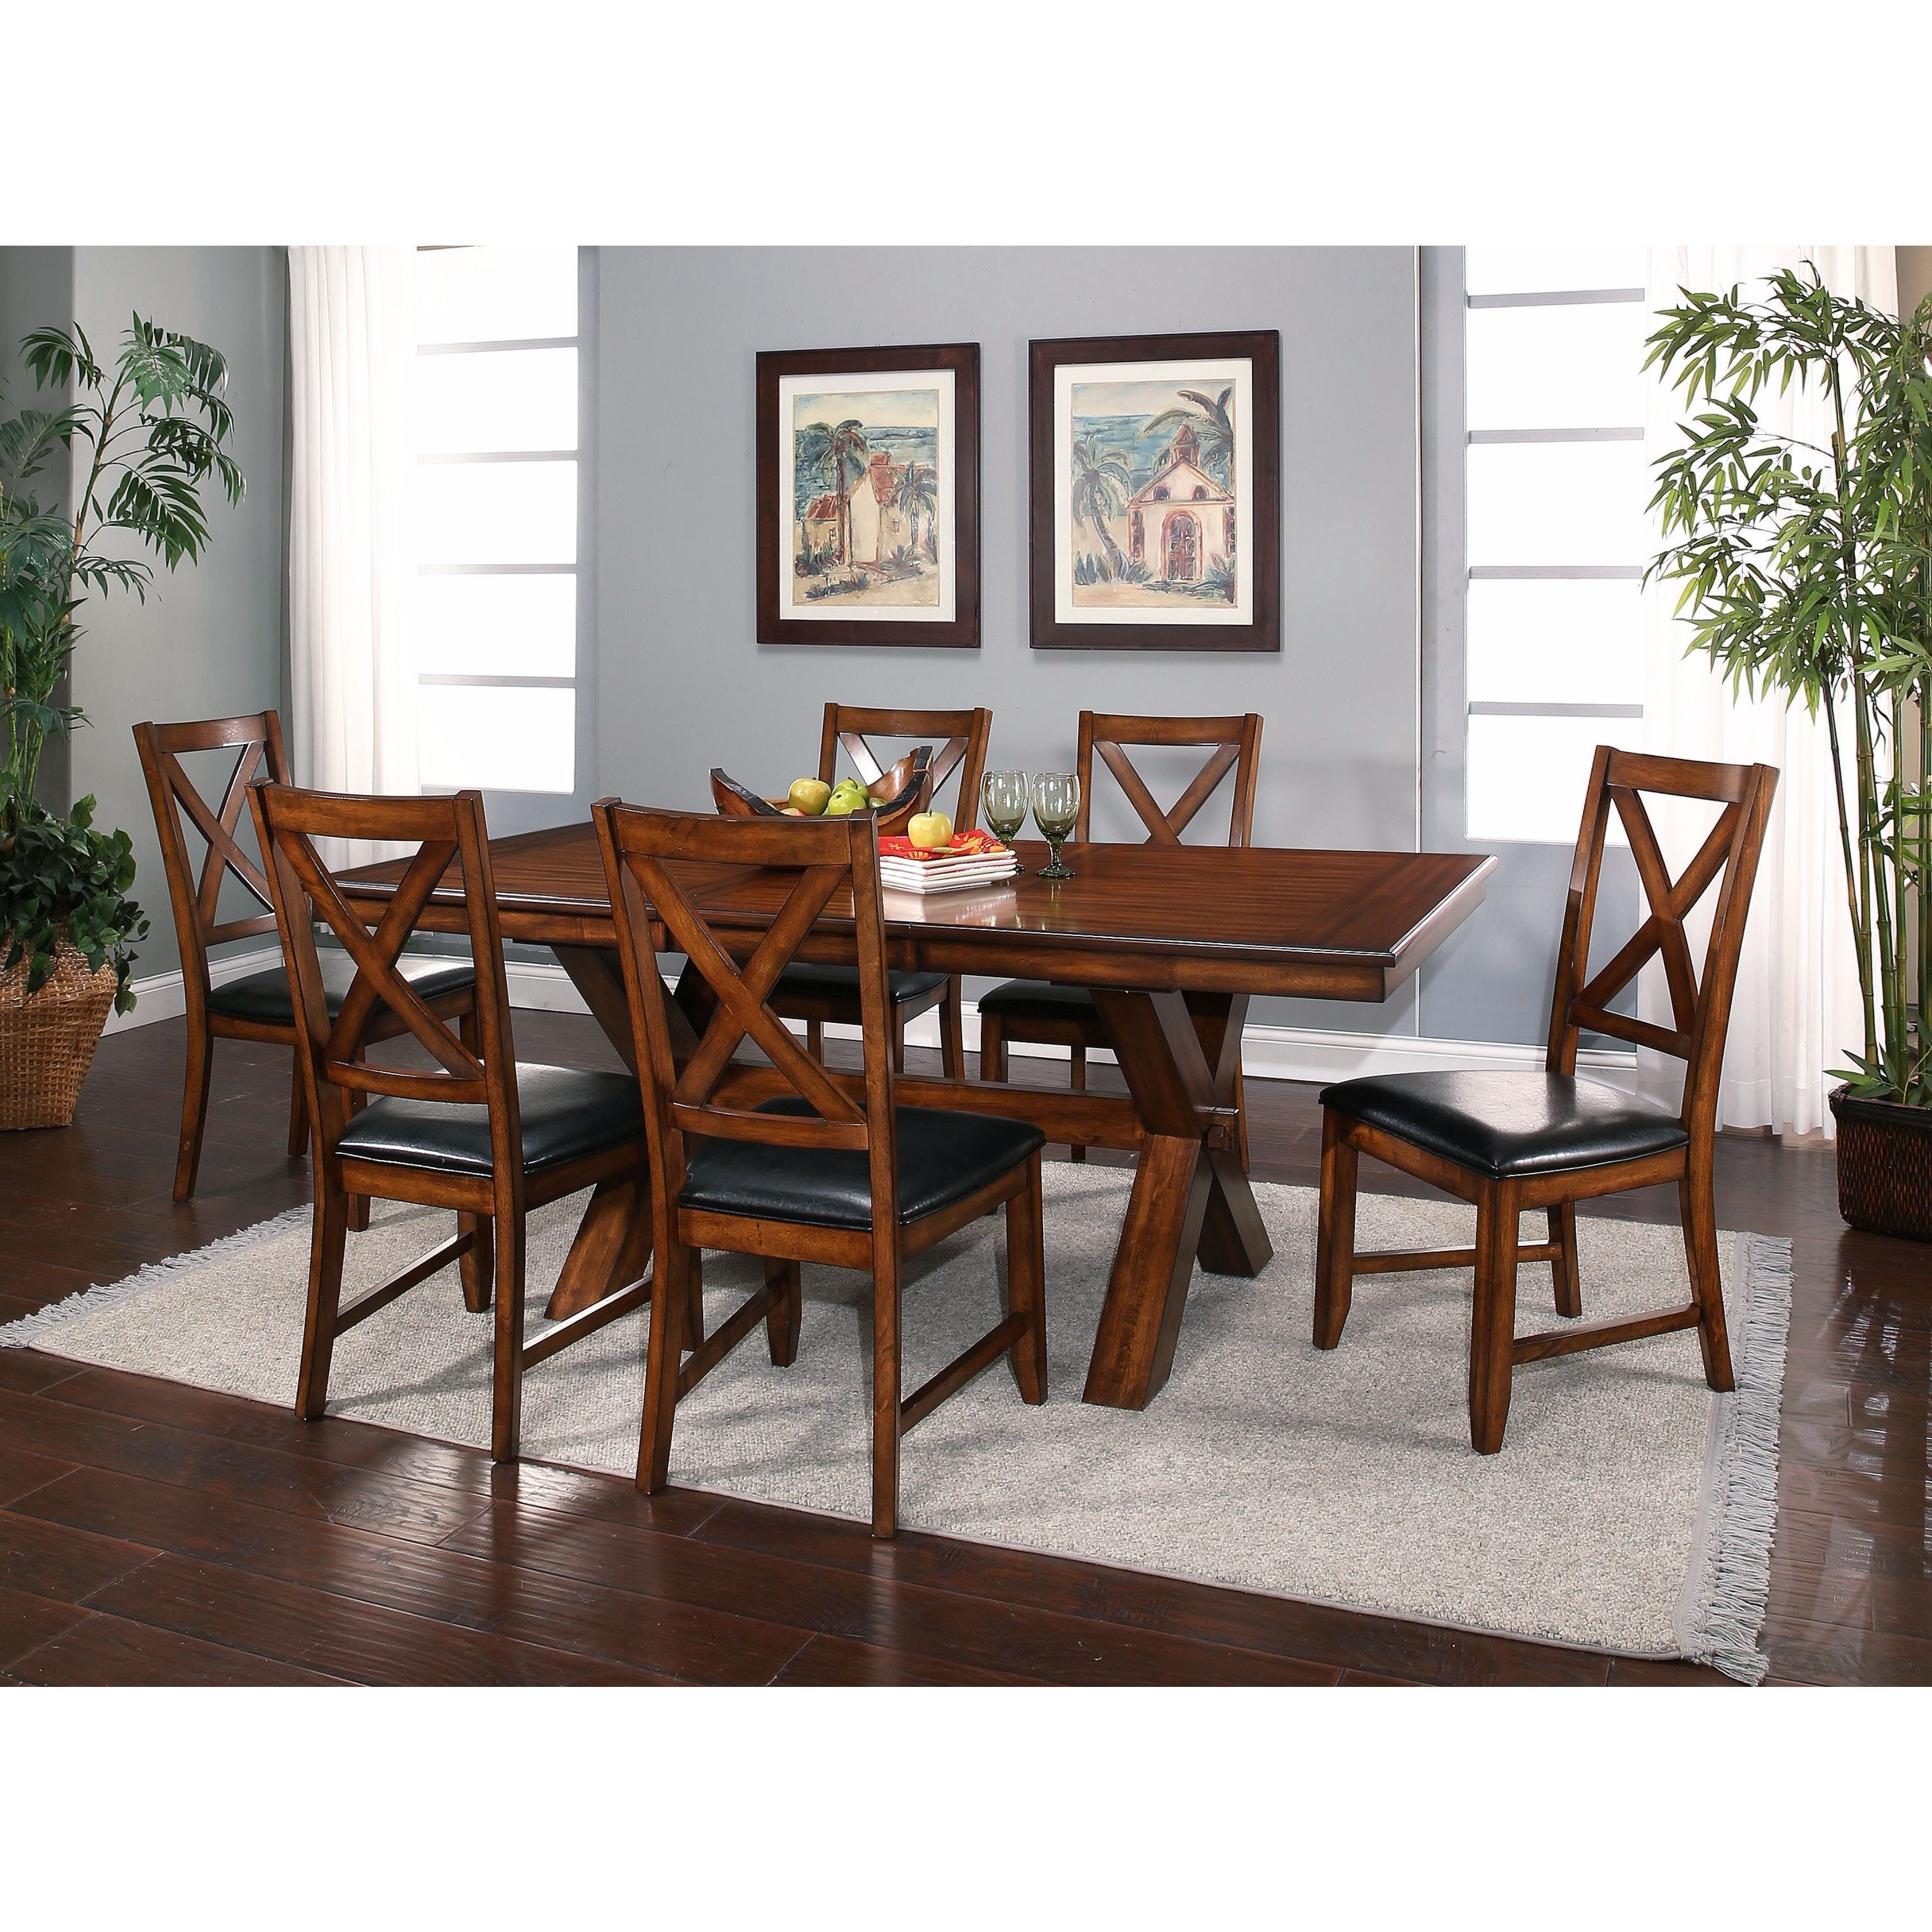 Abbyson Braxton 7 Piece Farmhouse Extendable Dining Set Overstock 12384929